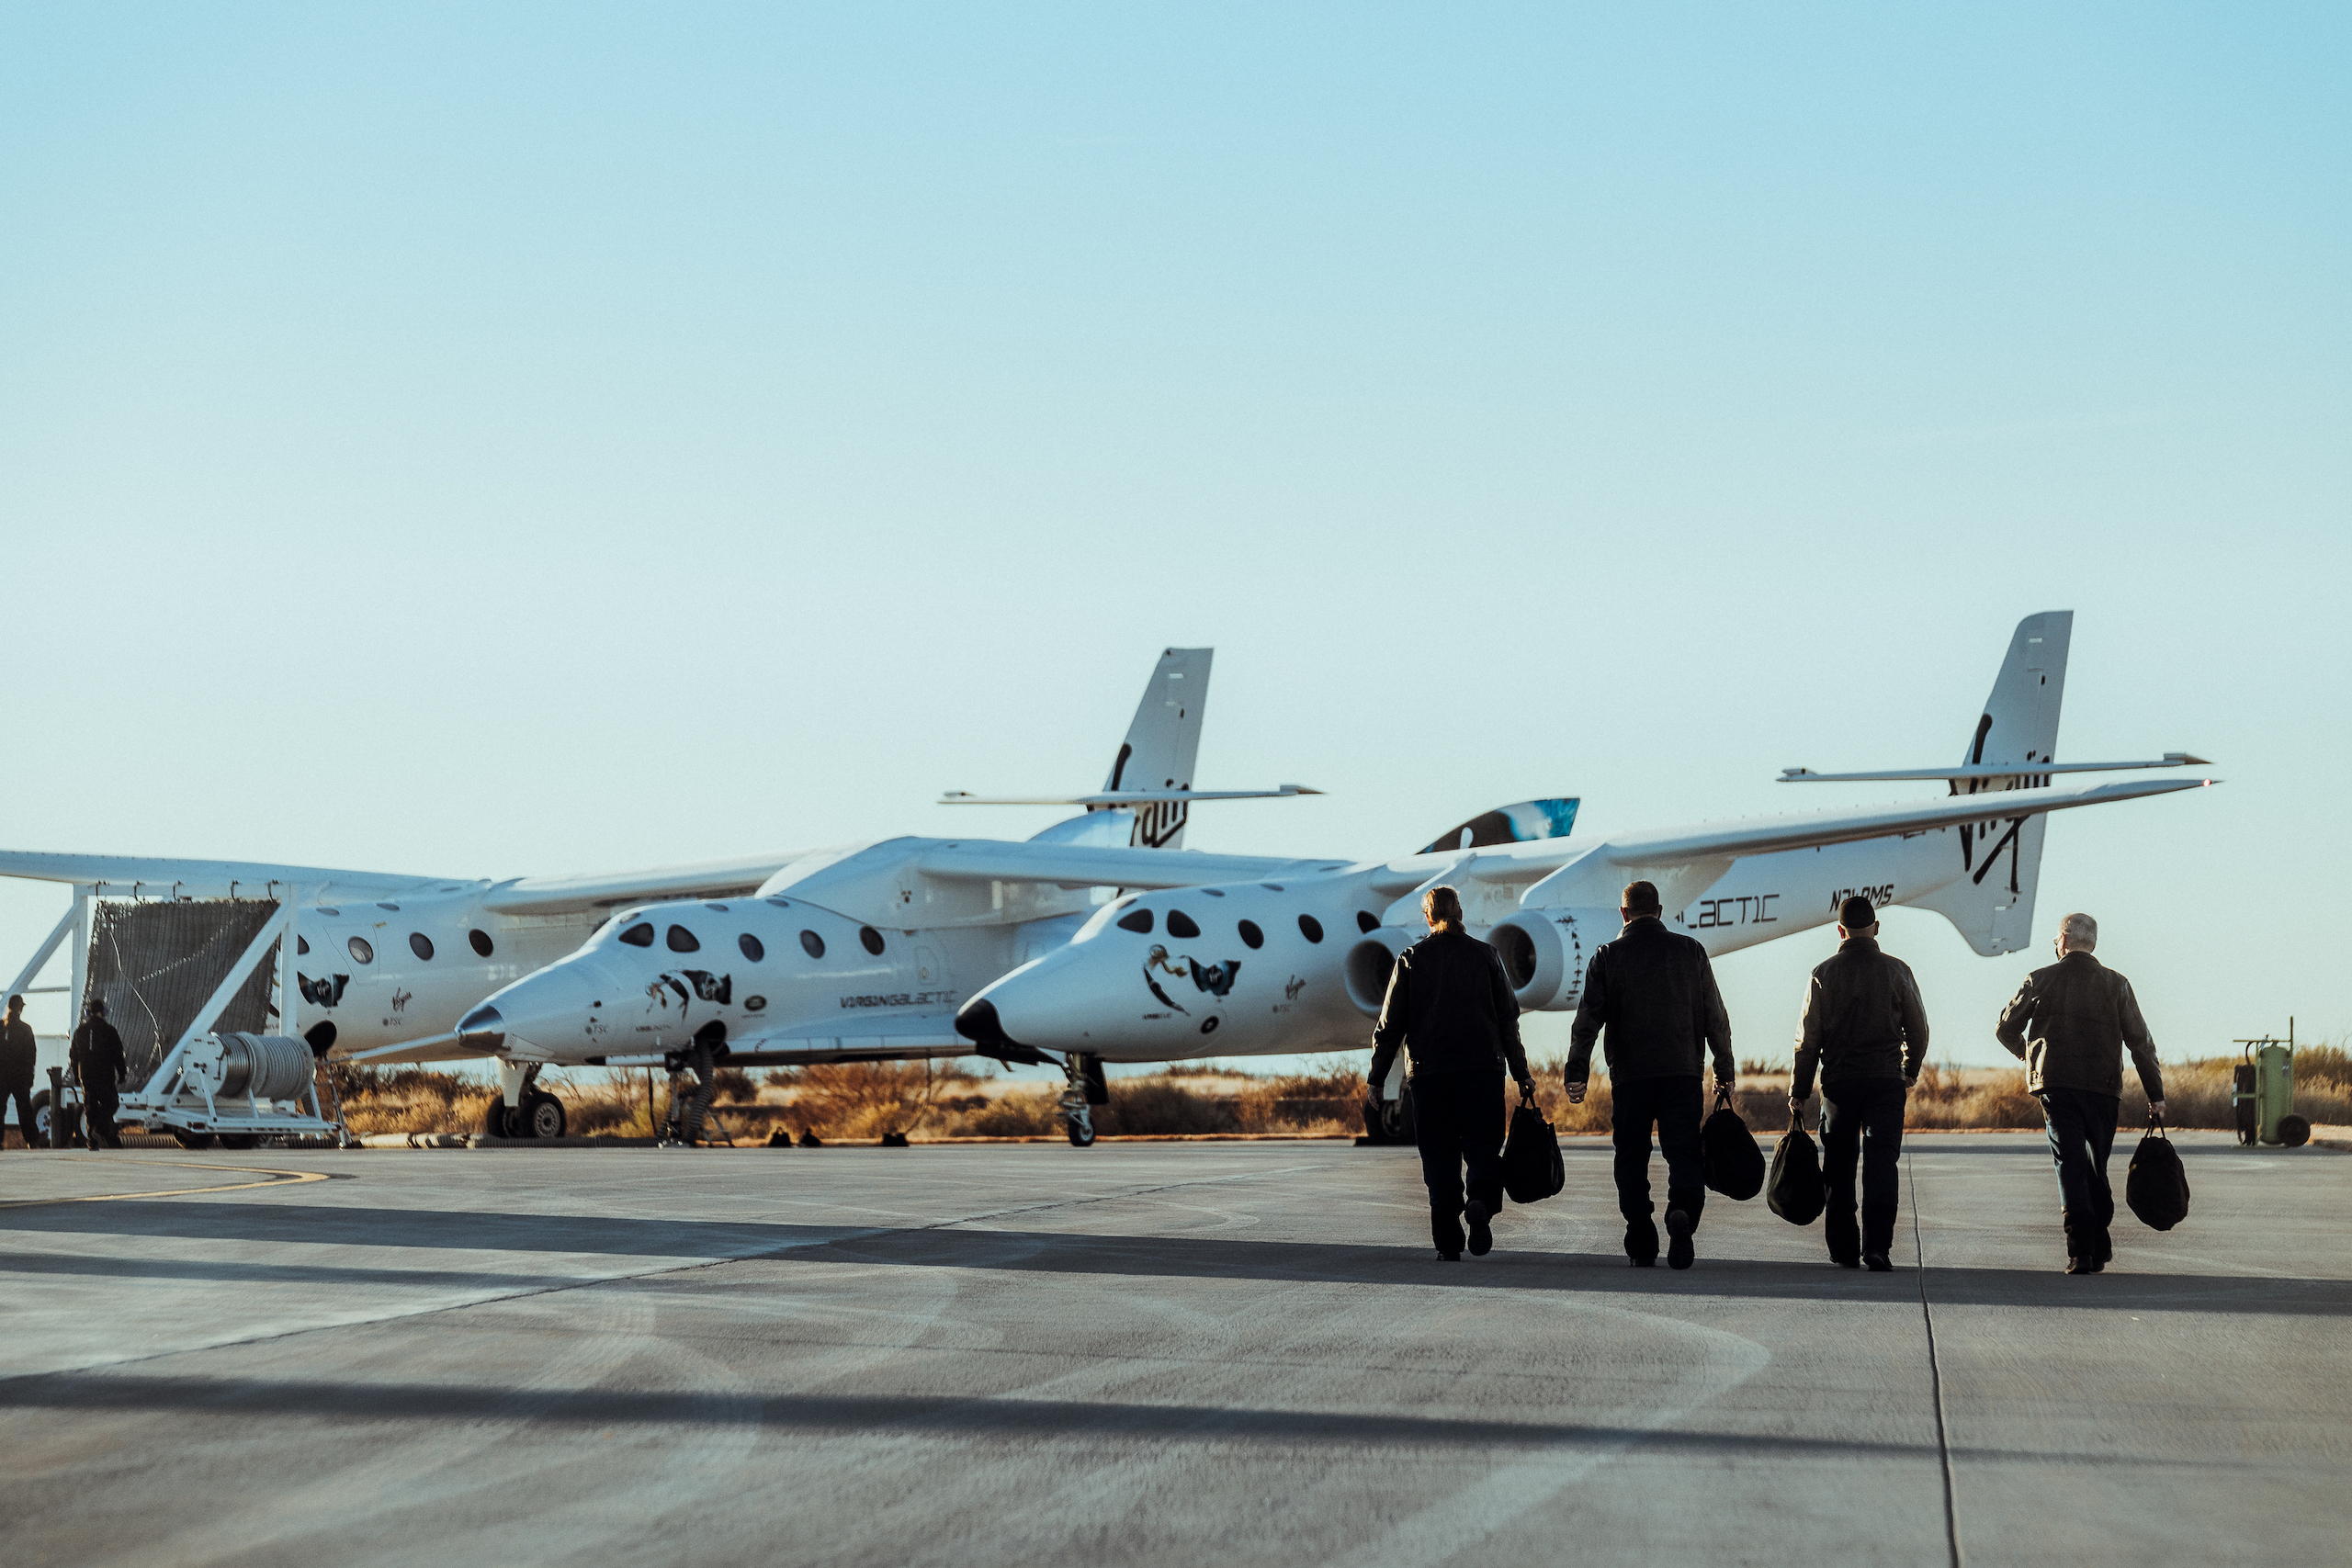 Virgin Galactic Pilots on their way to the Virgin Galactic Spaceflight System Virgin Galactic and Richard Branson celebrate launch of first passengers into space – TechCrunch